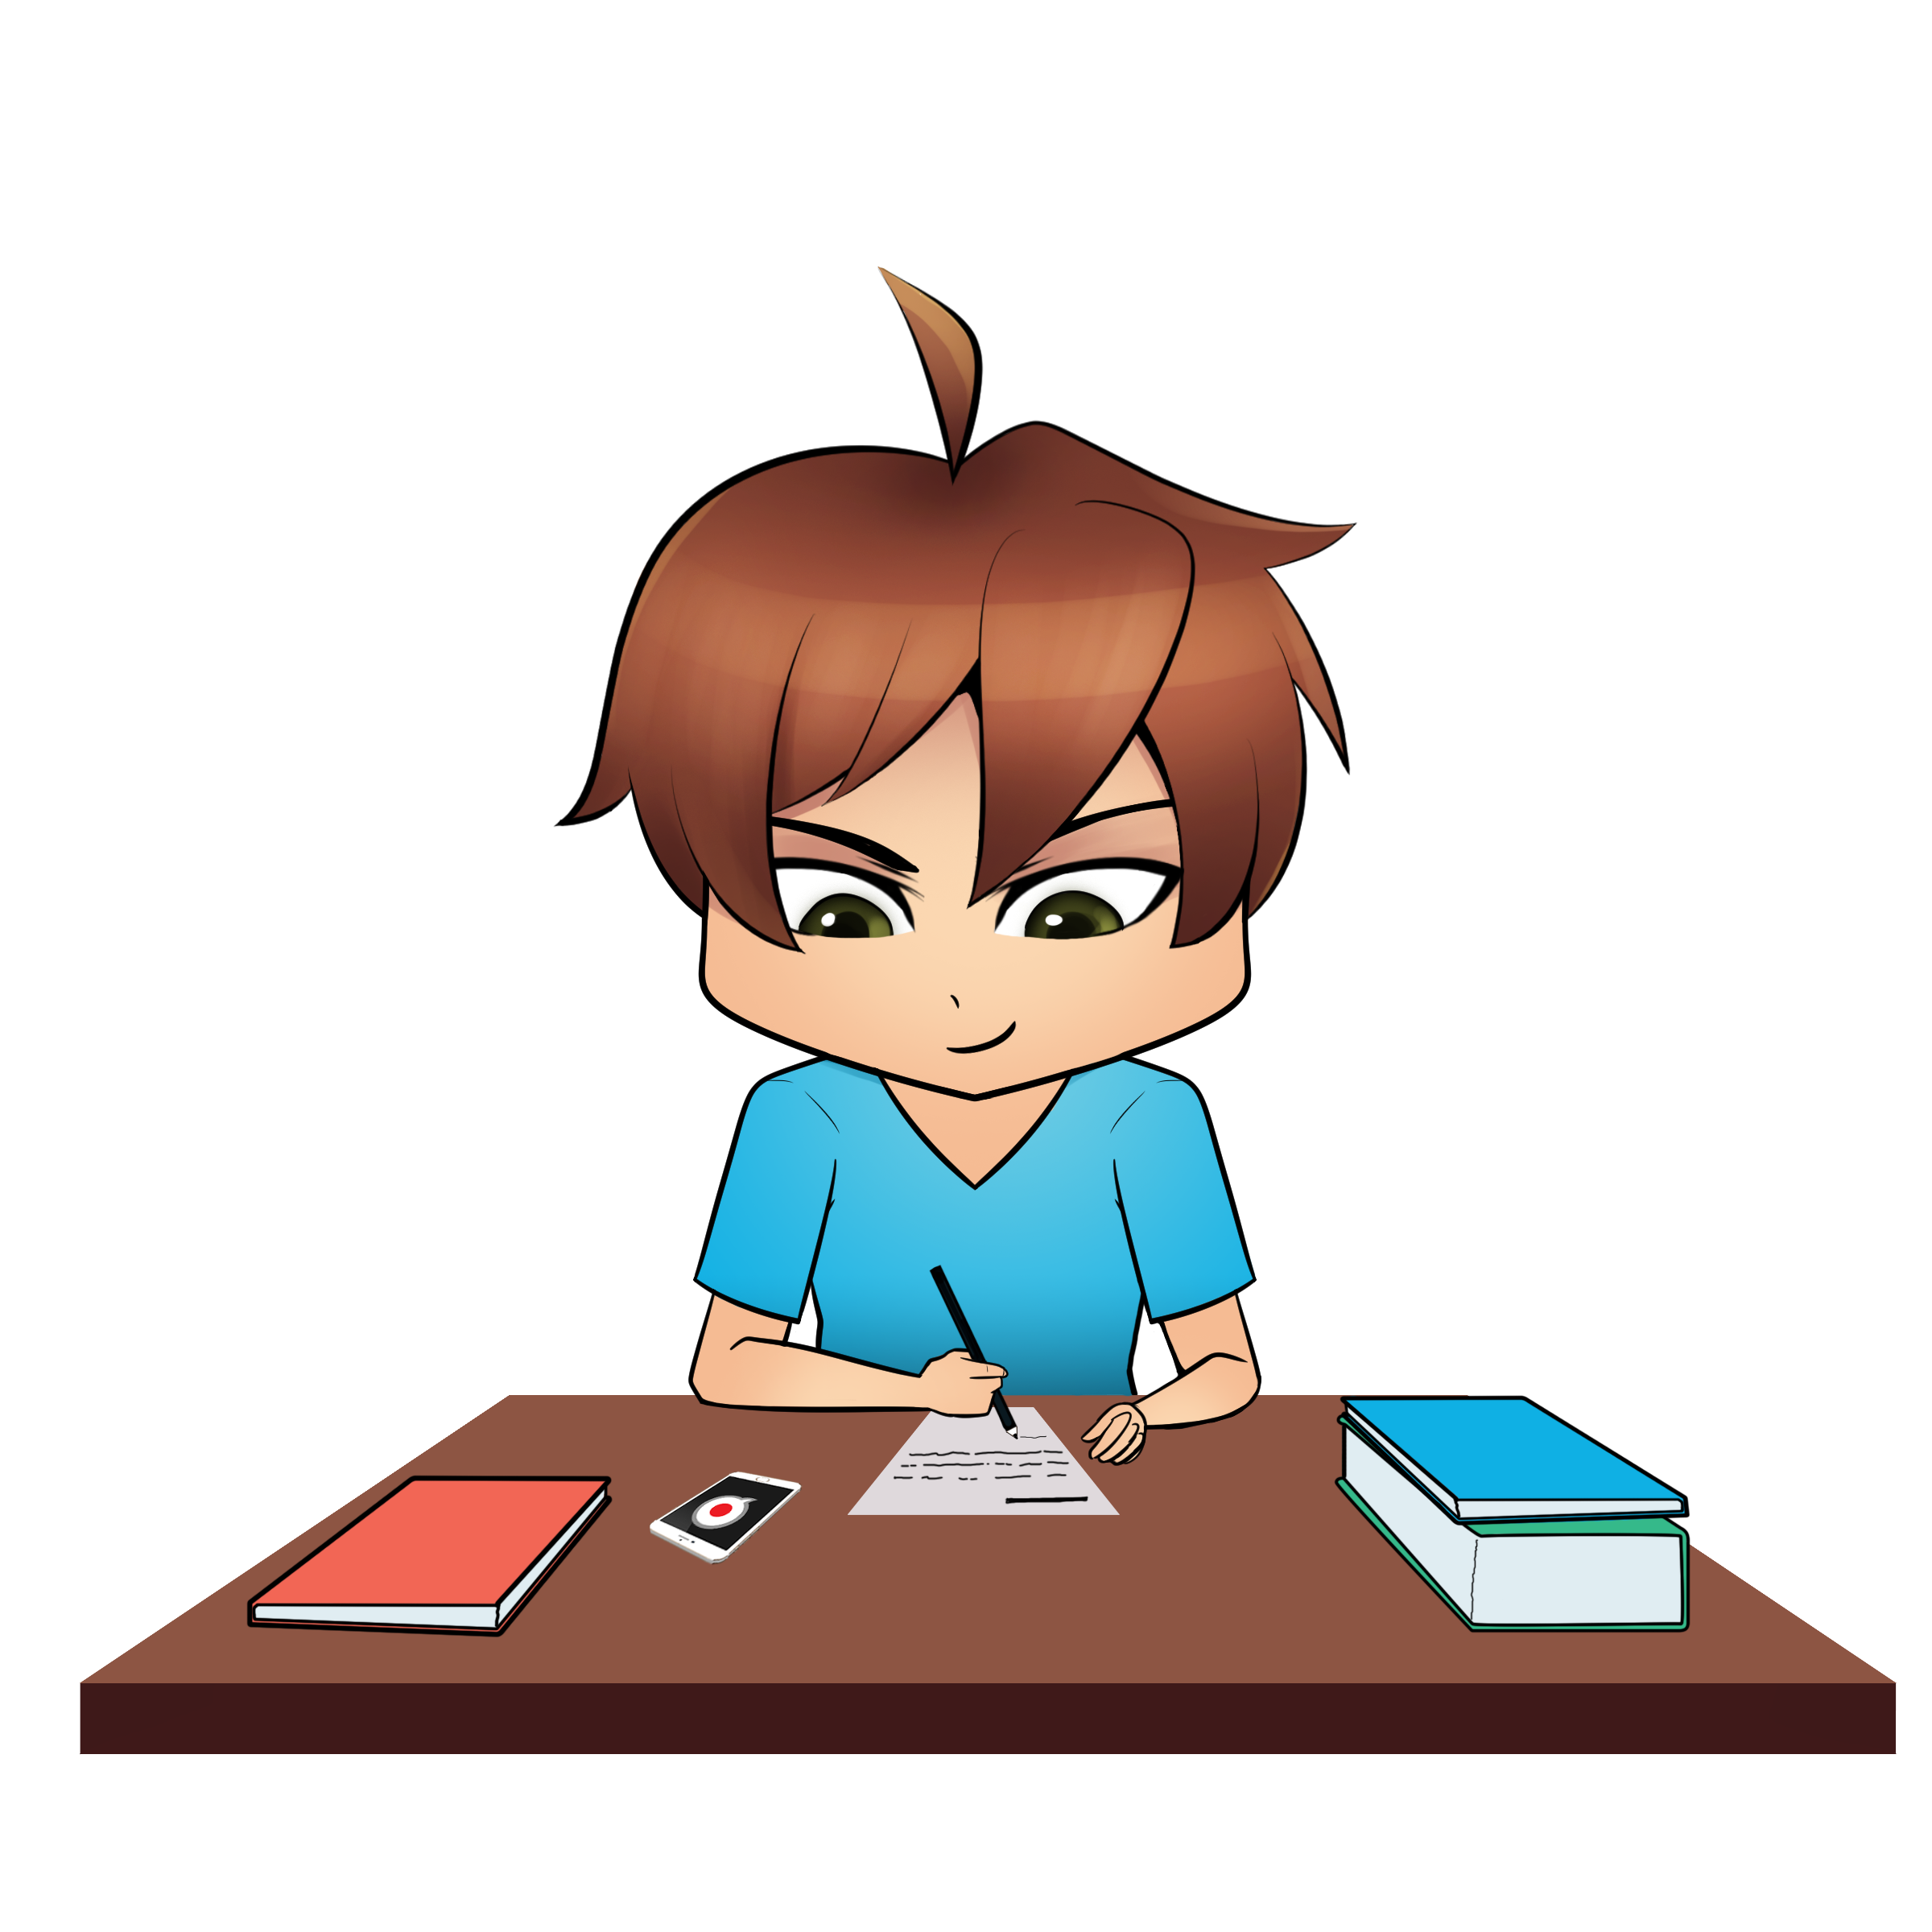 clip library download How to successfully pass. Writer clipart easy exam